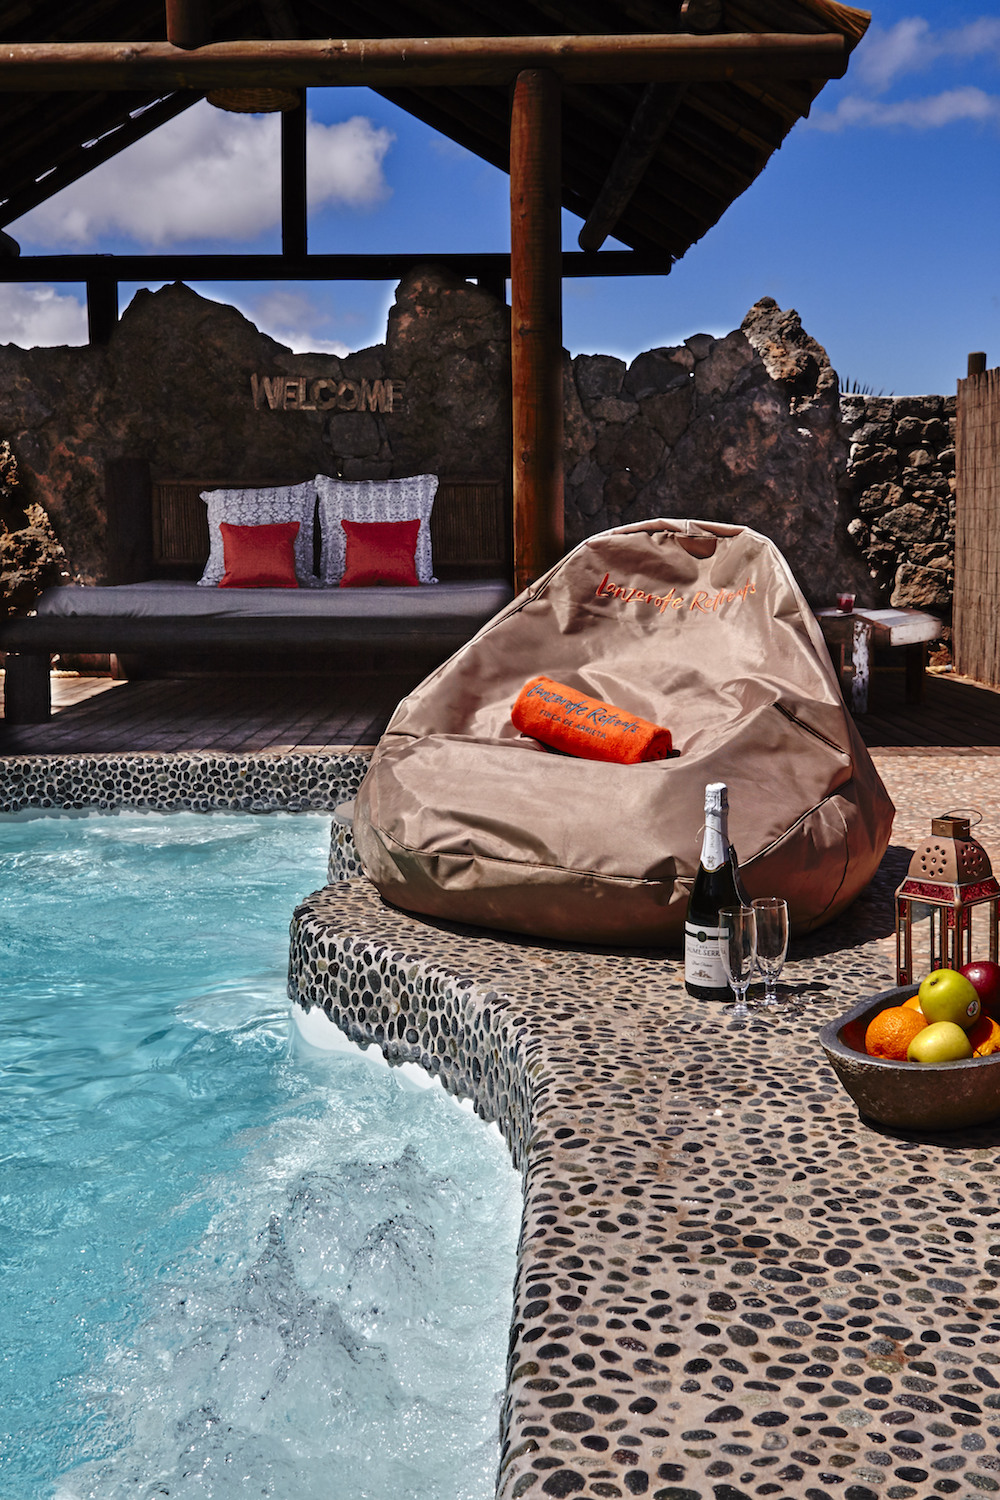 Solar heated private plunge pool, a great place to relax and soak up the sun